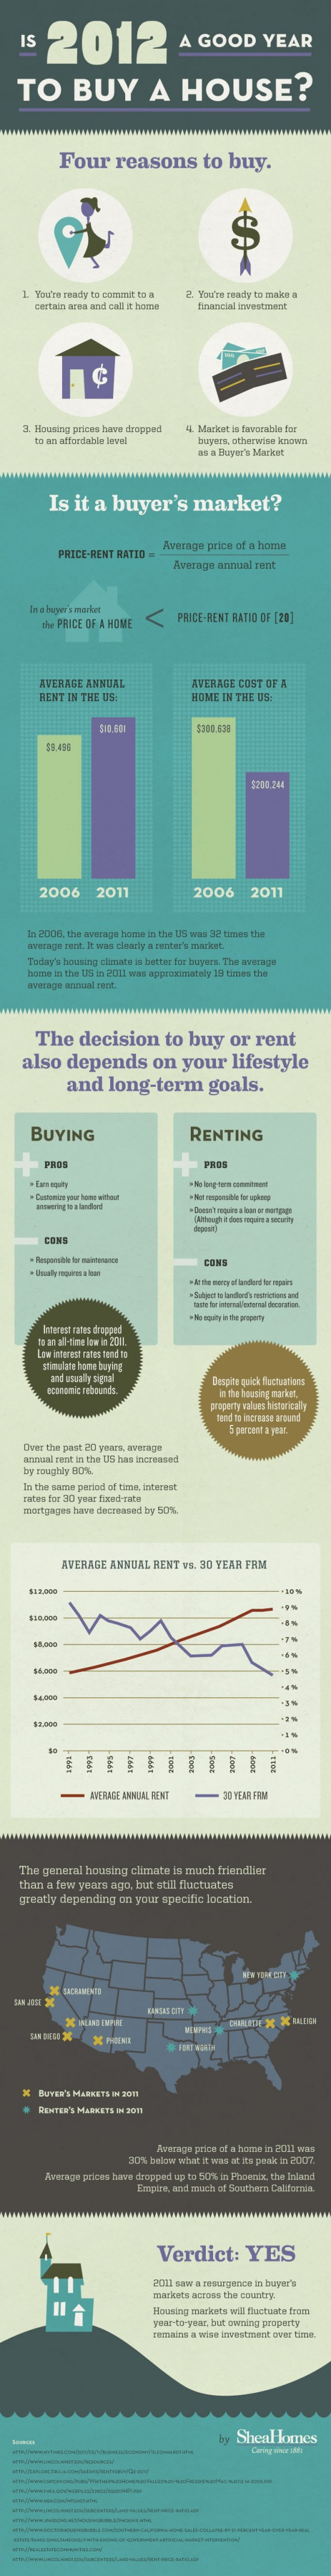 infographic buy or rent a house in 2012